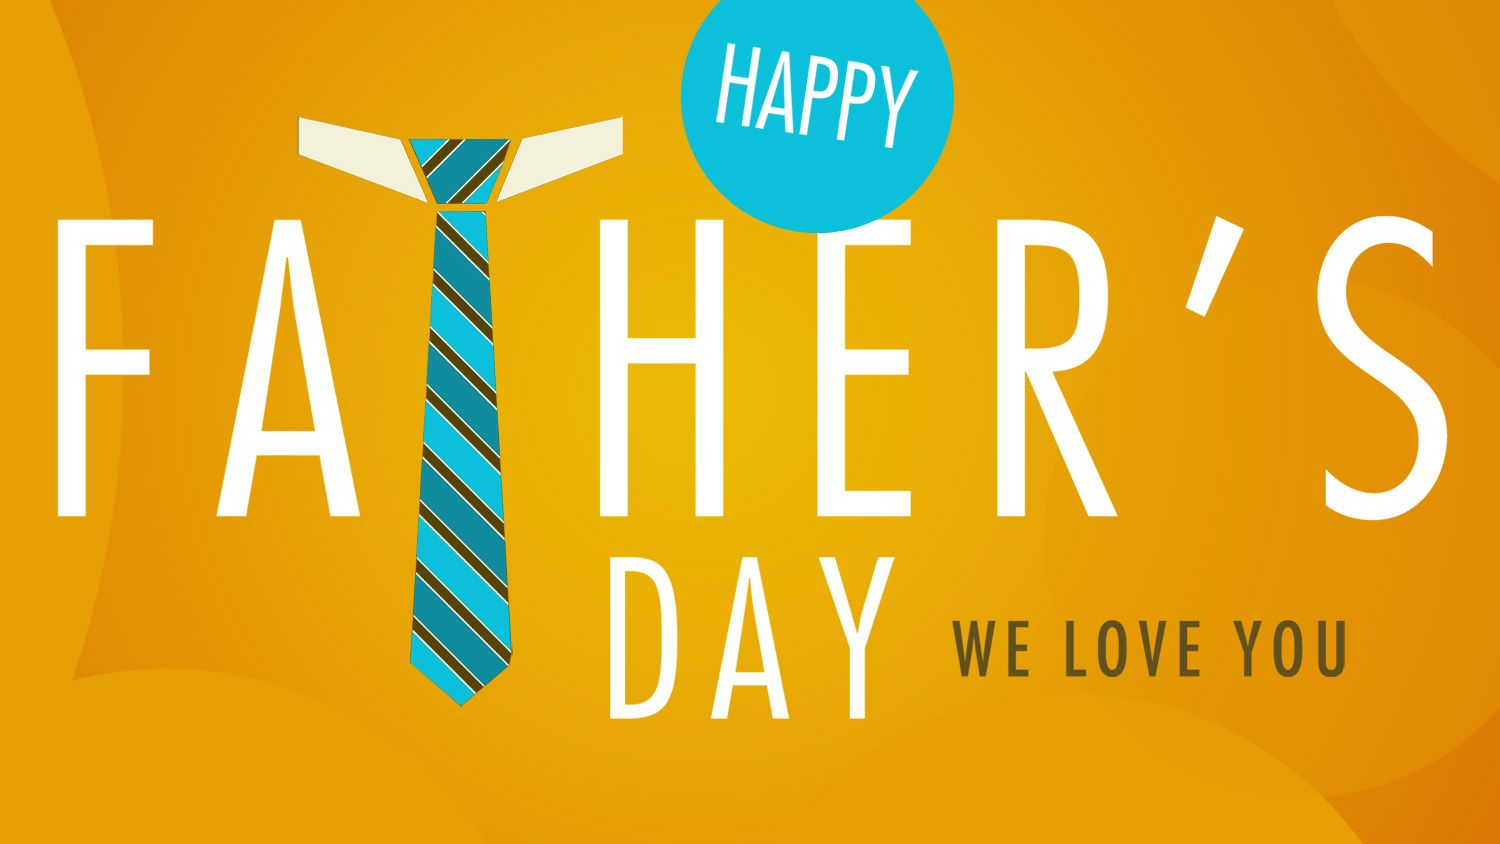 Best Fathers Day Background With Tie